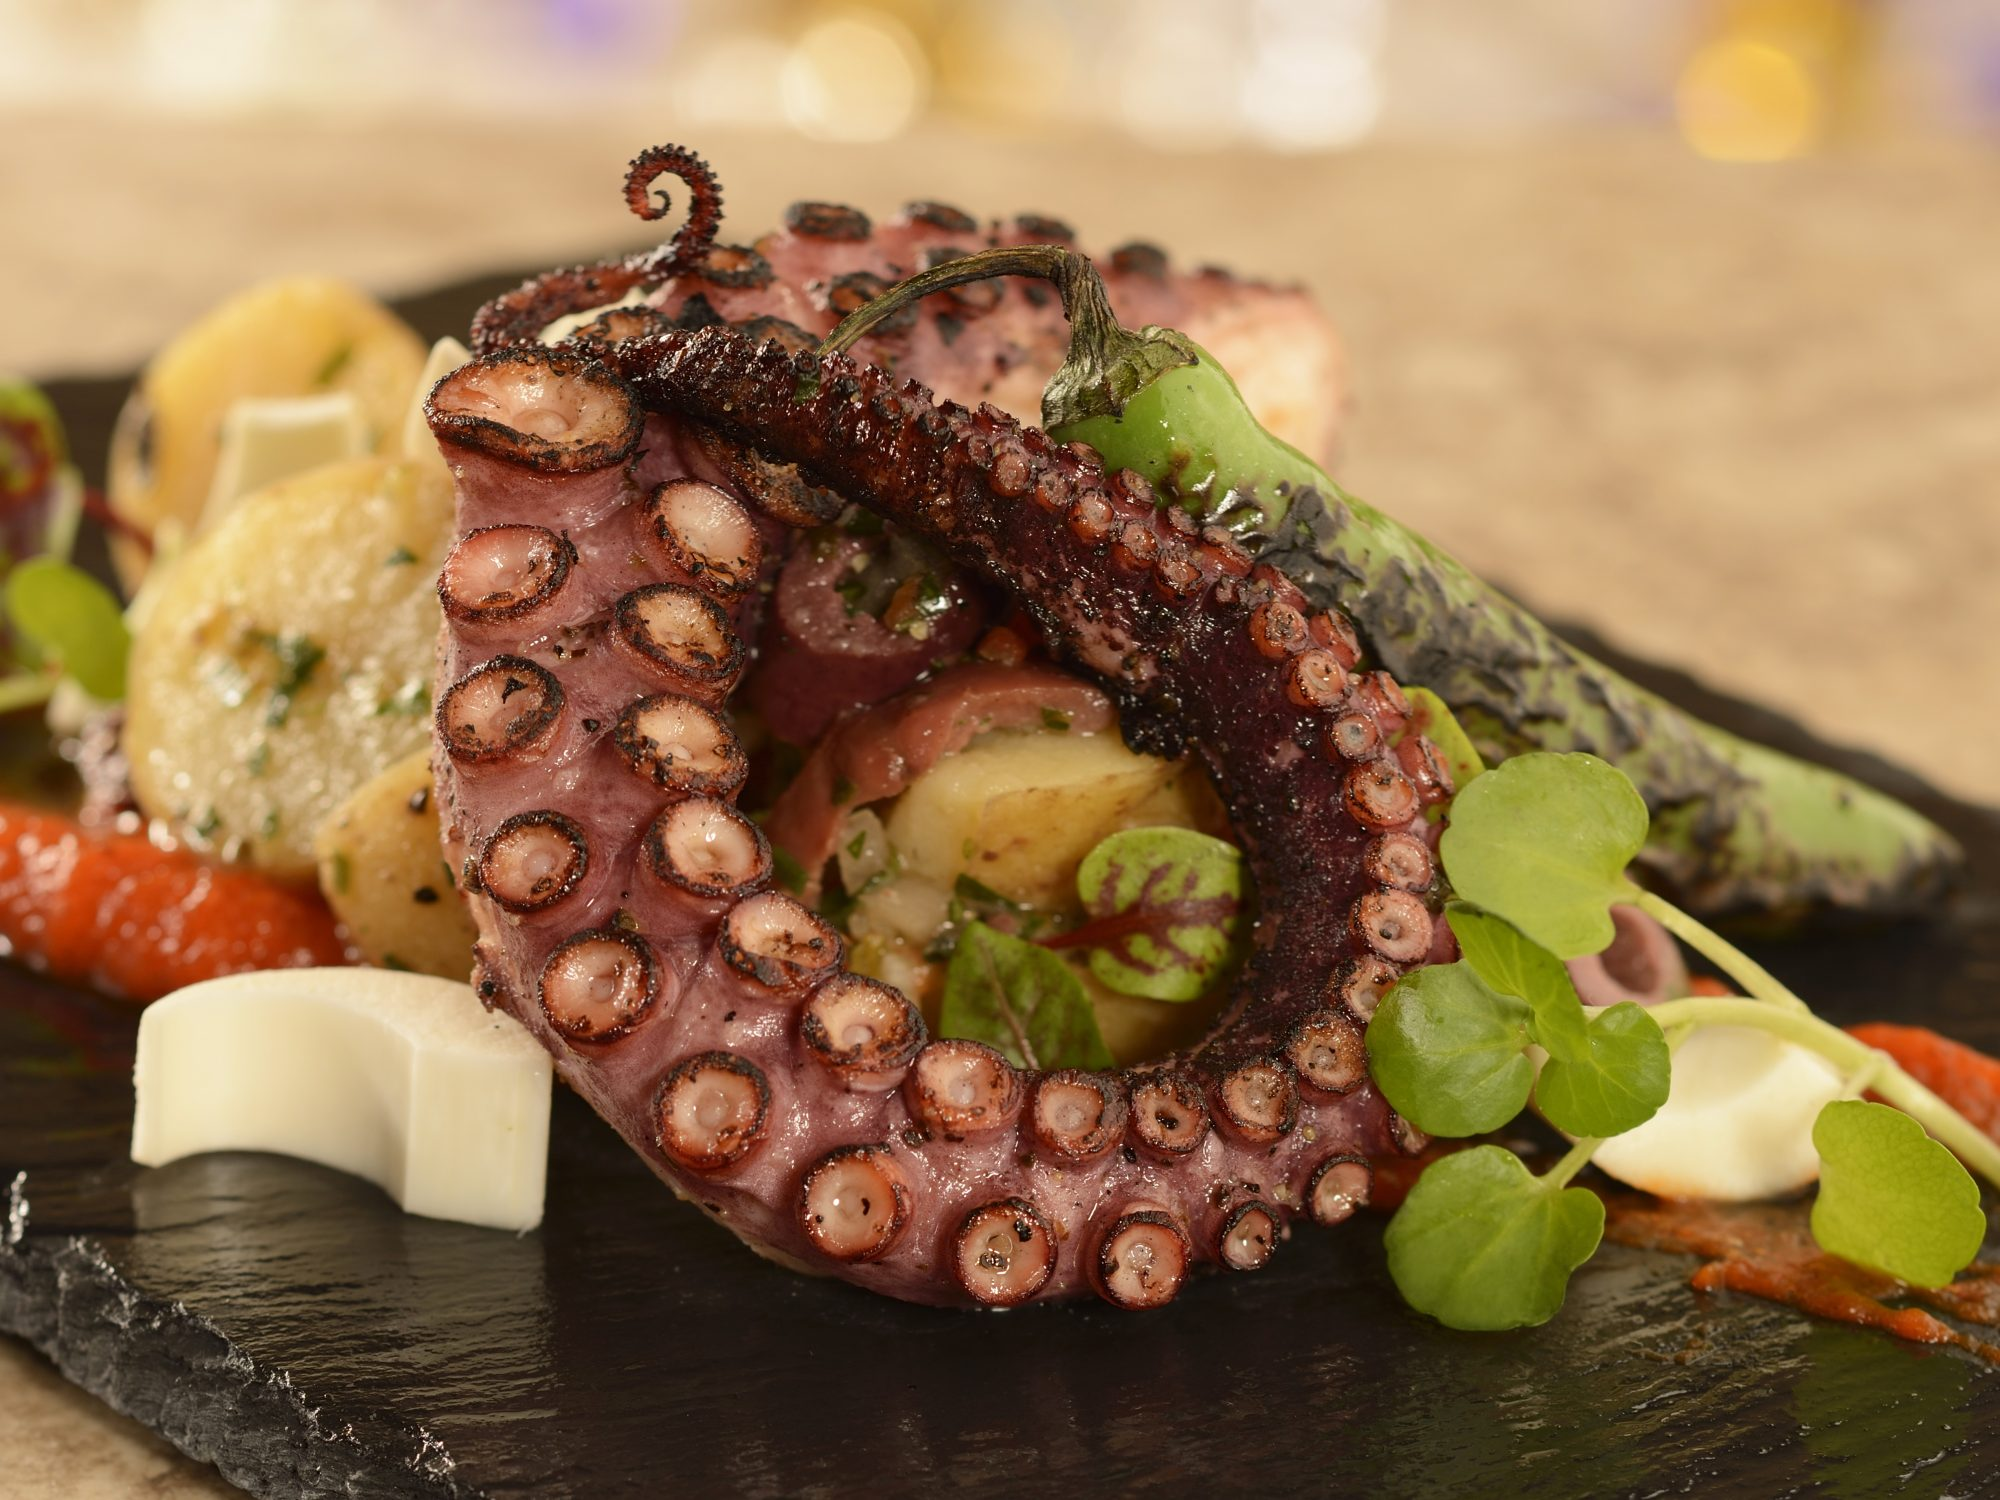 Disney World's 'Beauty and the Beast'-Themed Restaurant Menu Gets a Makeover This Summer disneyworld-be-our-guest-octopus-FT-BLOG0218